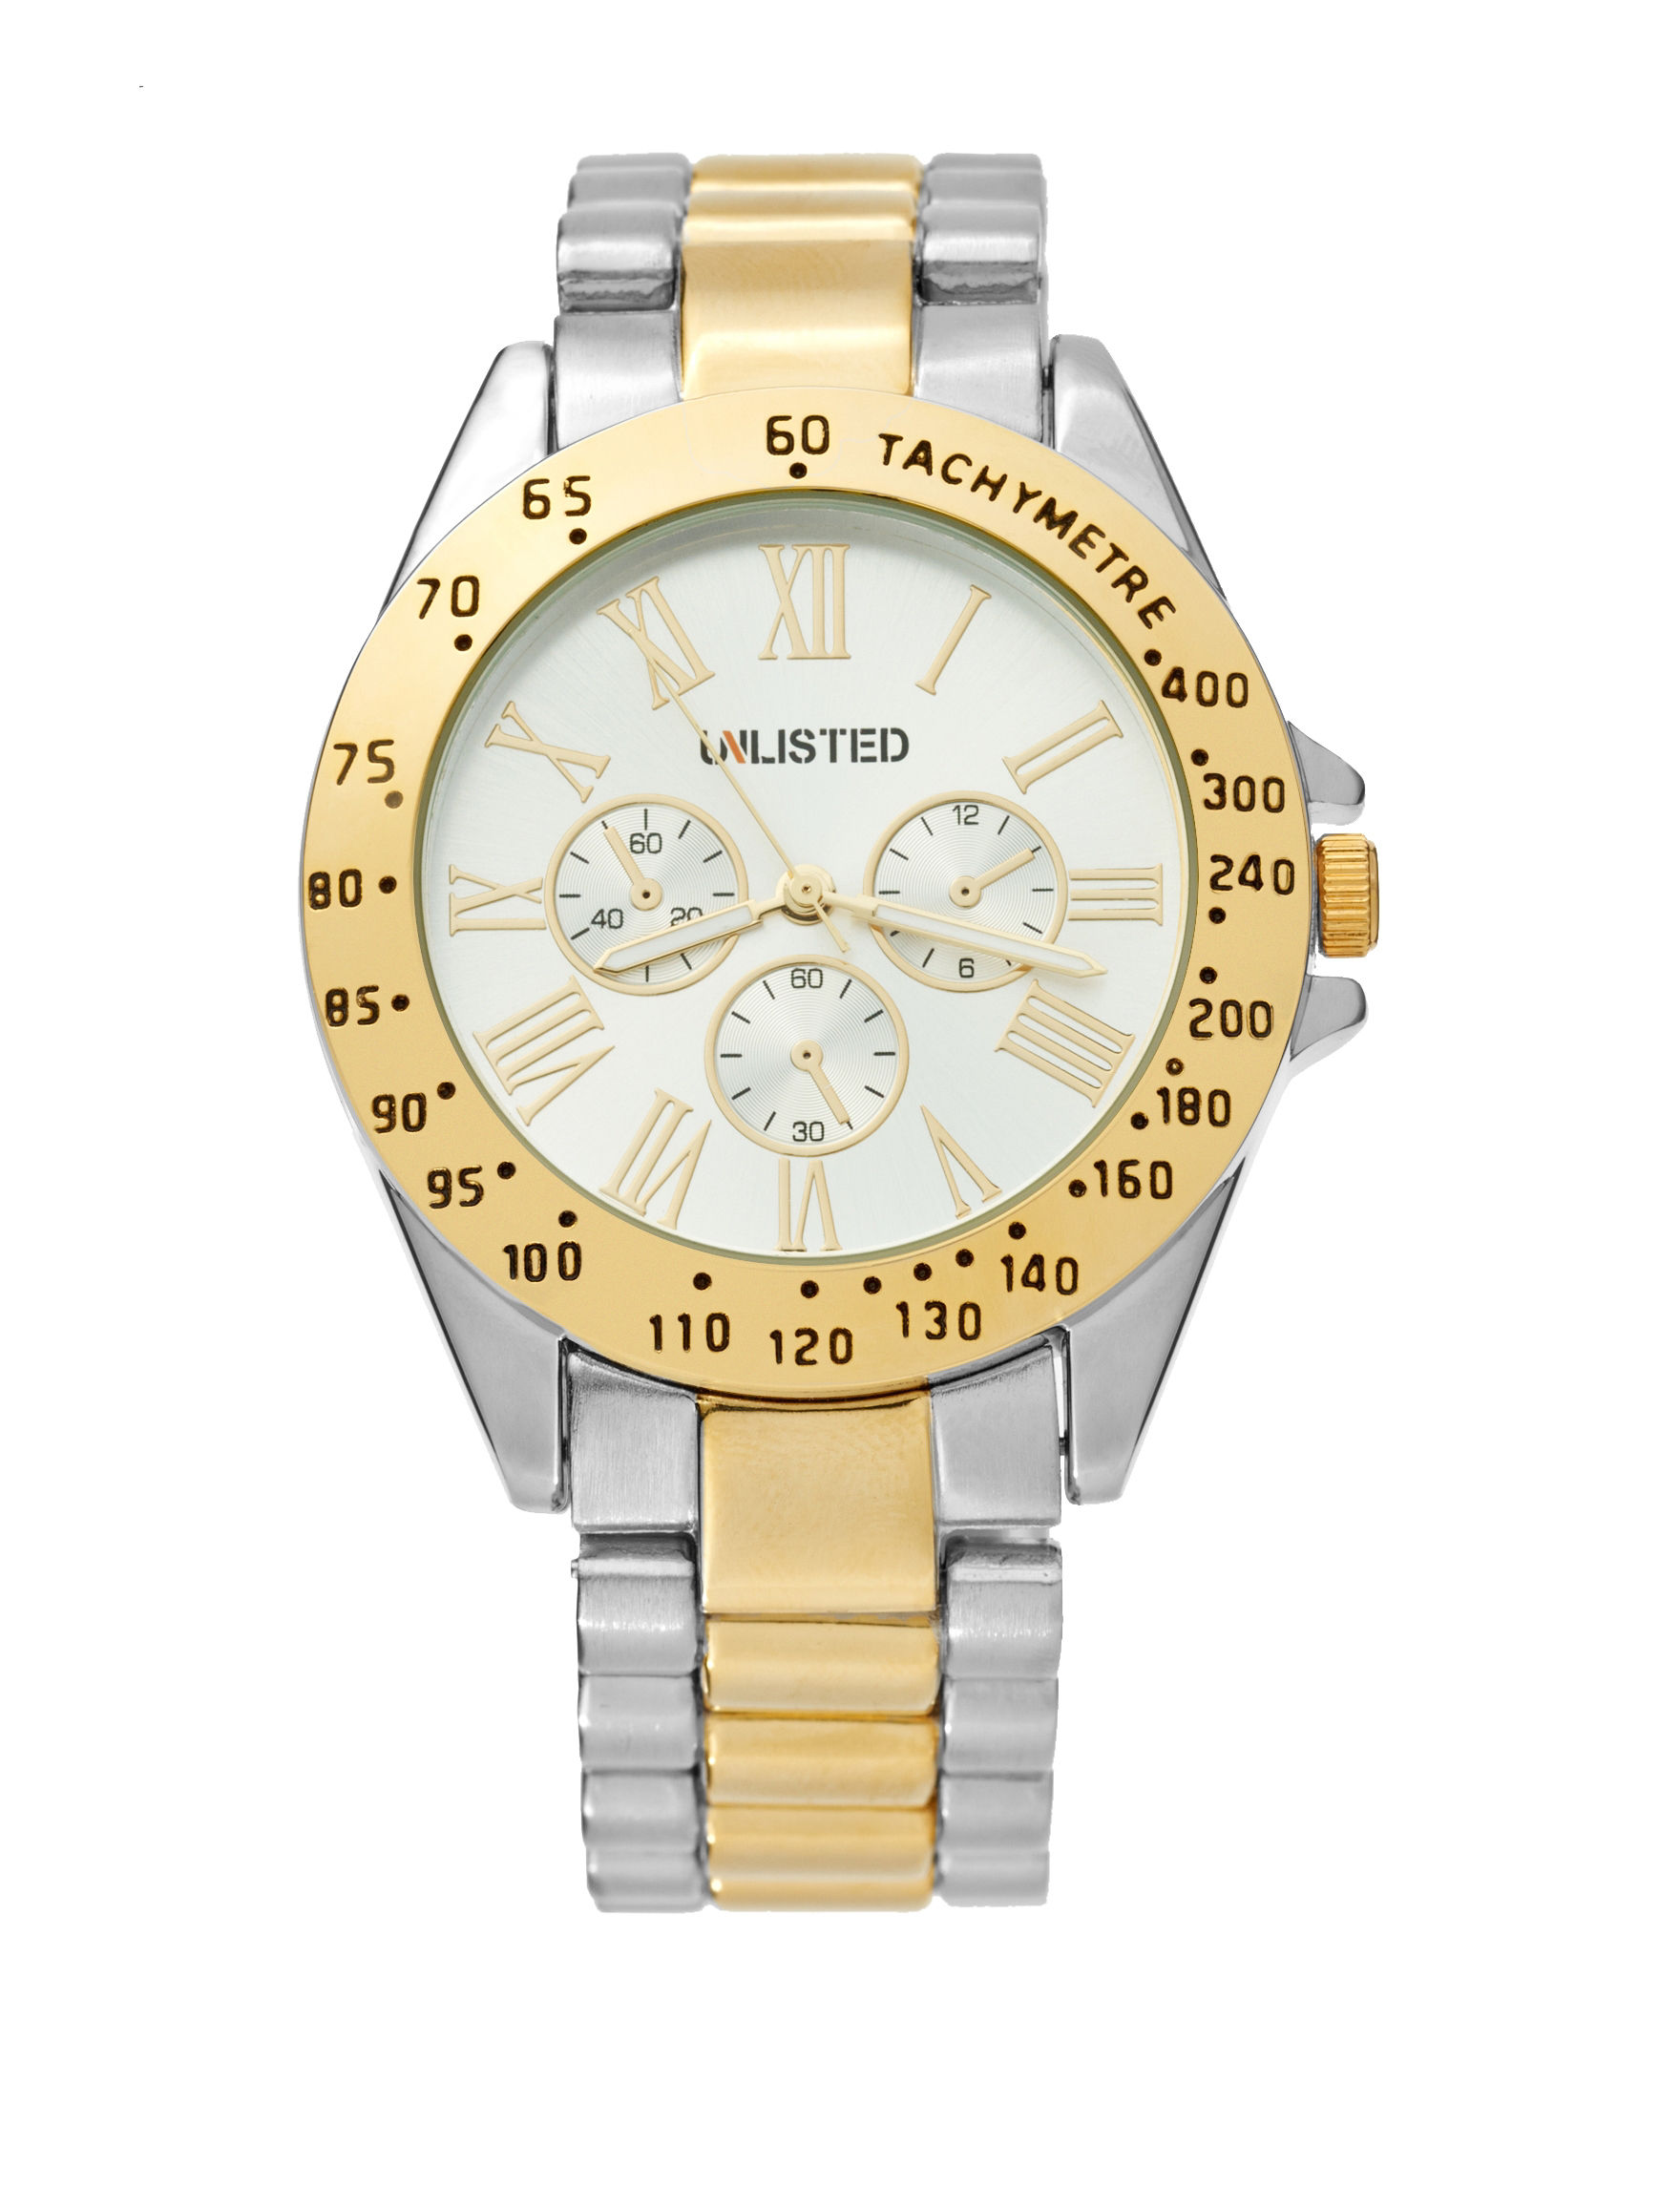 Unlisted Silver / Gold Fashion Watches